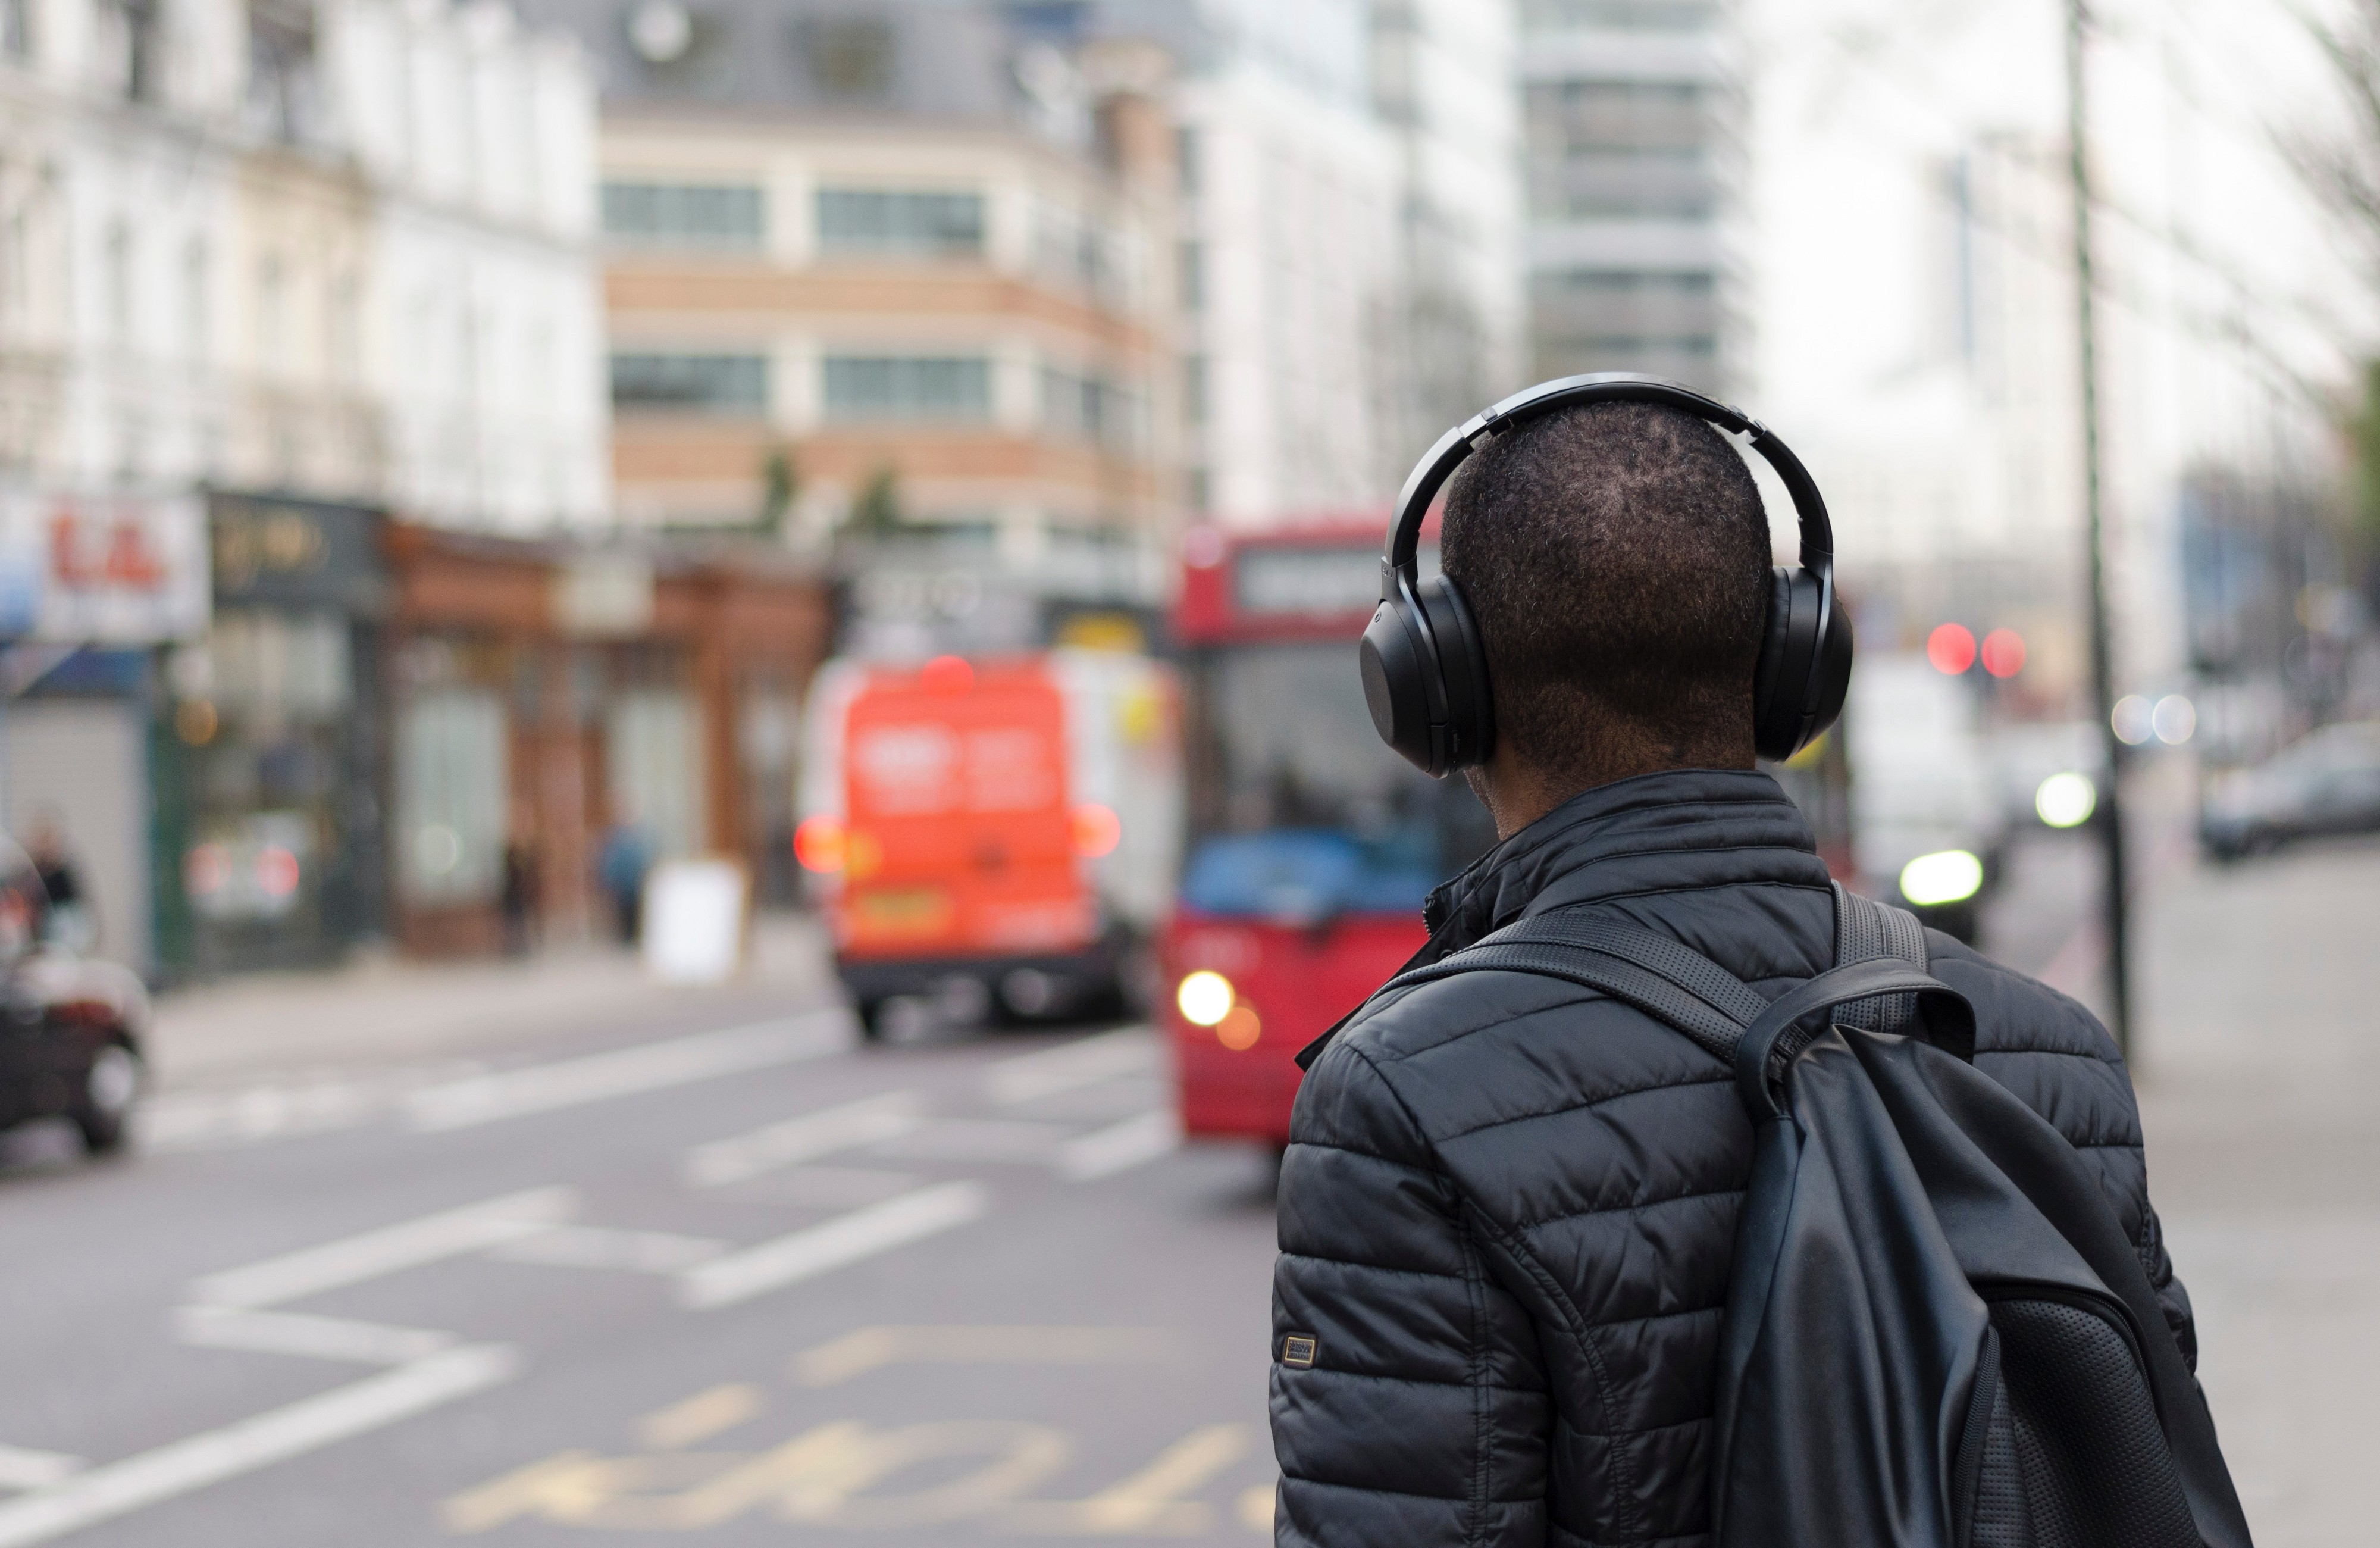 10 Must-Listen to Podcasts For Boosting Daily Productivity